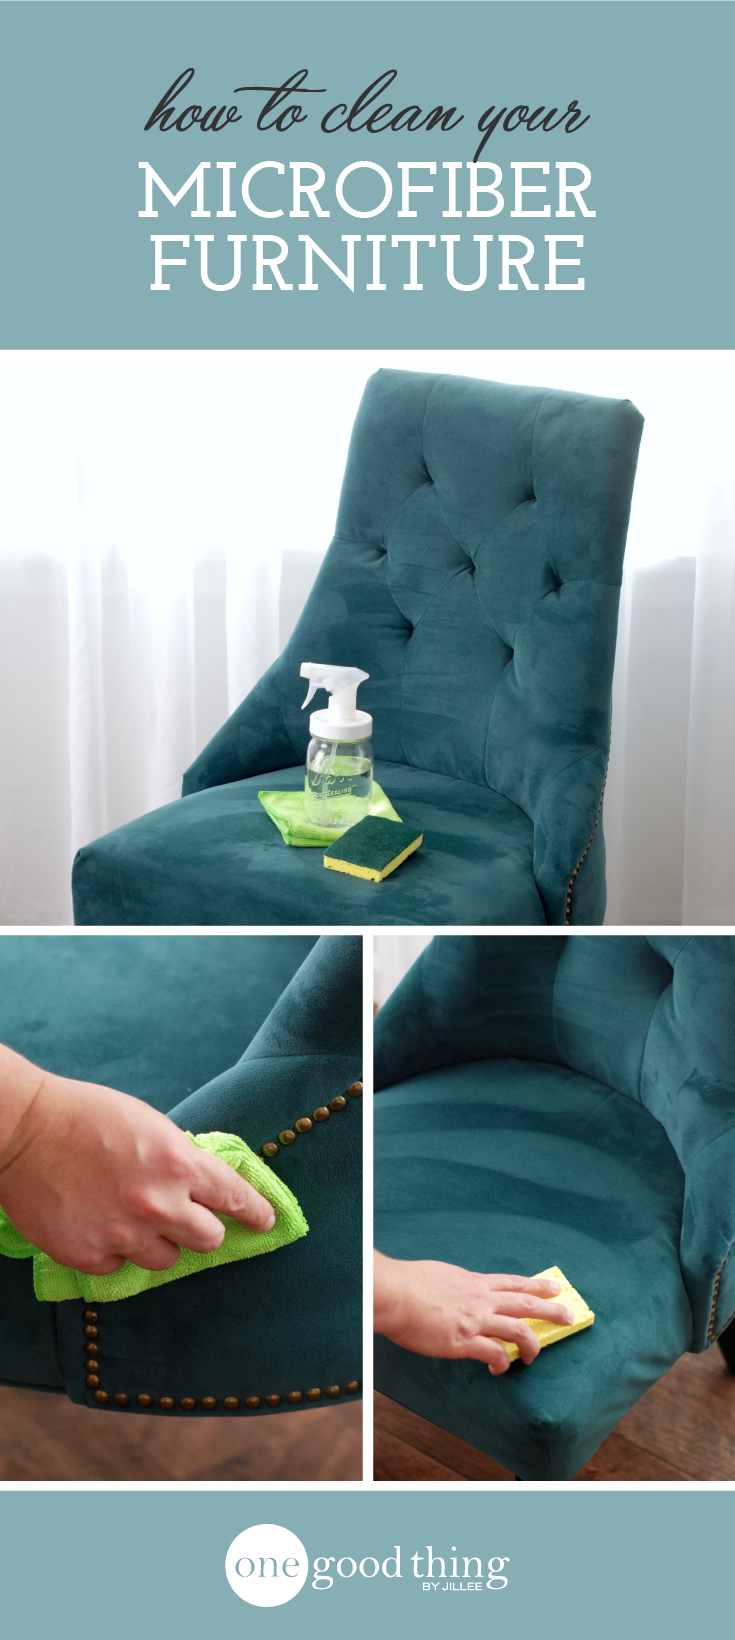 How To Clean Your Microfiber Furniture The Safe And Easy Way ...